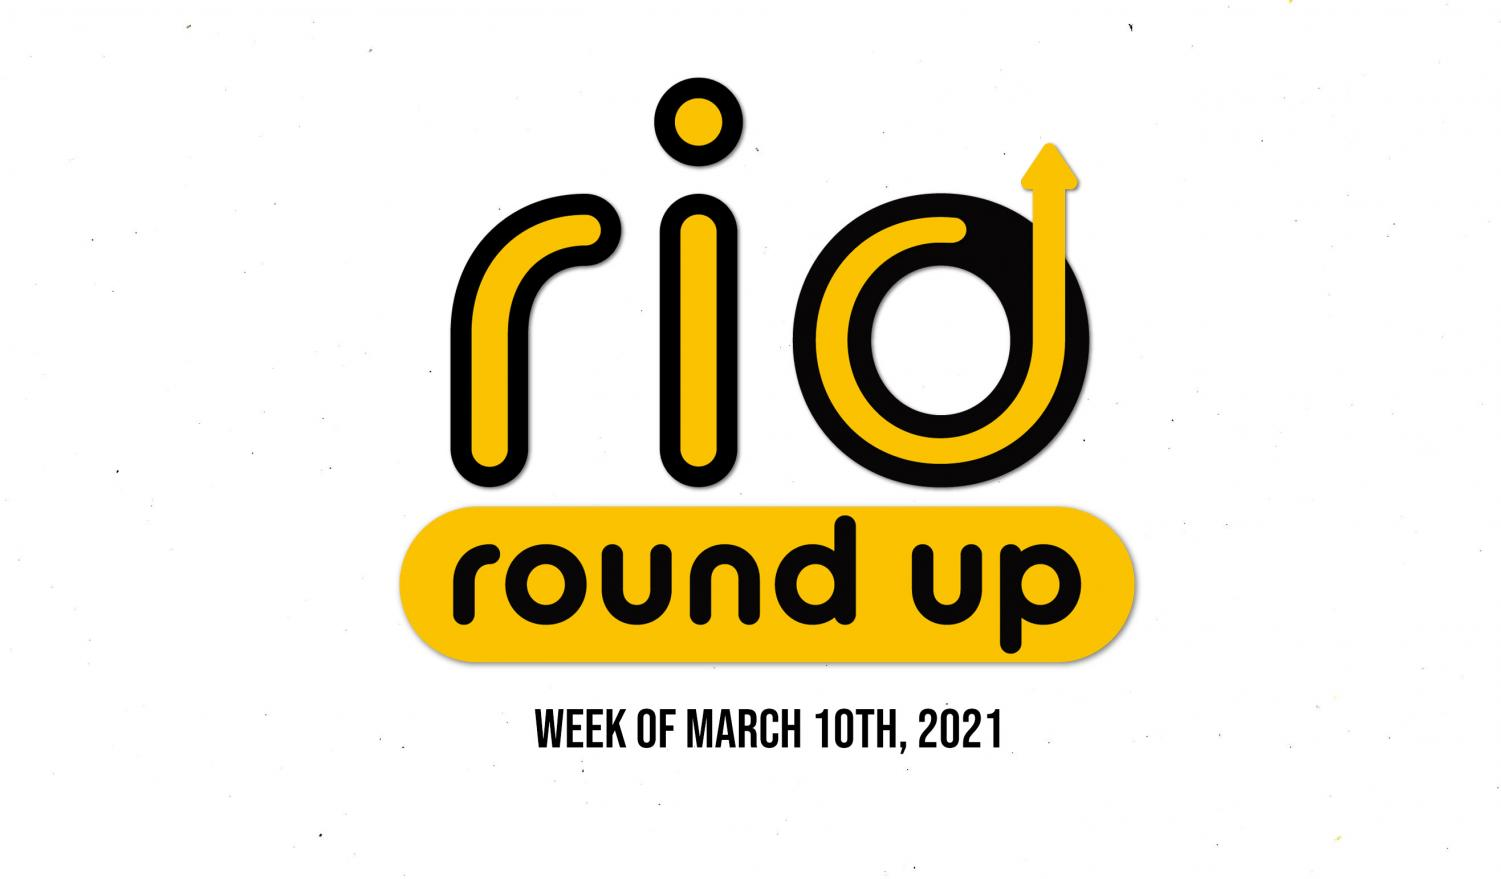 Rio Round Up (Week of March 10th, 2021)